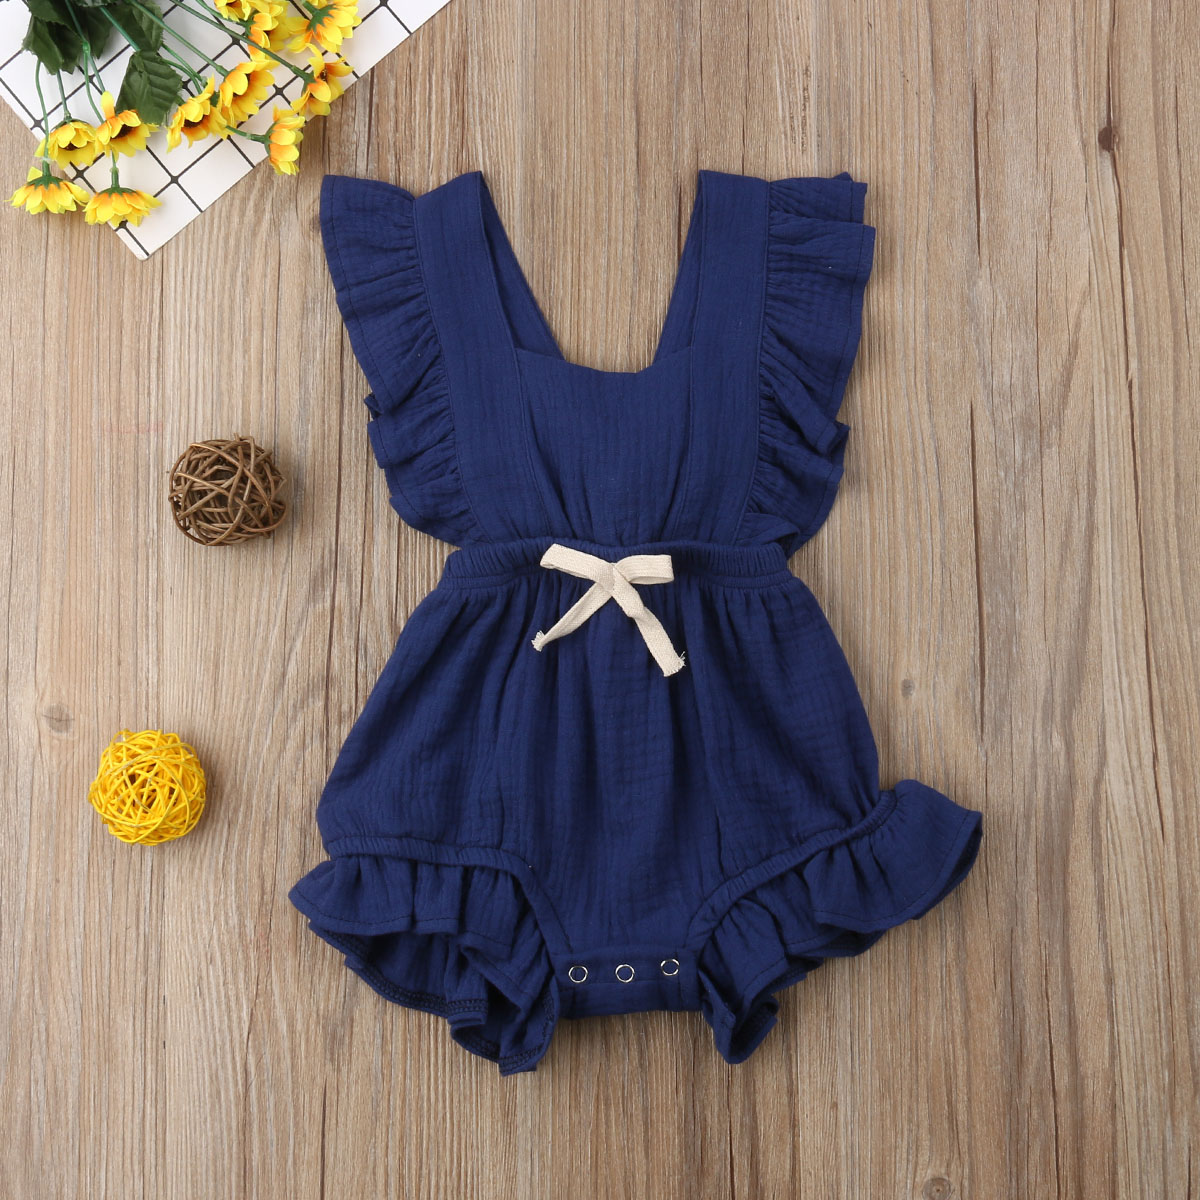 HTB1v8TLaozrK1RjSspmq6AOdFXac 2019 Brand New Infant Newborn Baby Girls Ruffle Rompers One-Pieces Clothes Baby Girl Summer Sleeveless Romper Jumpsuit Sunsuit